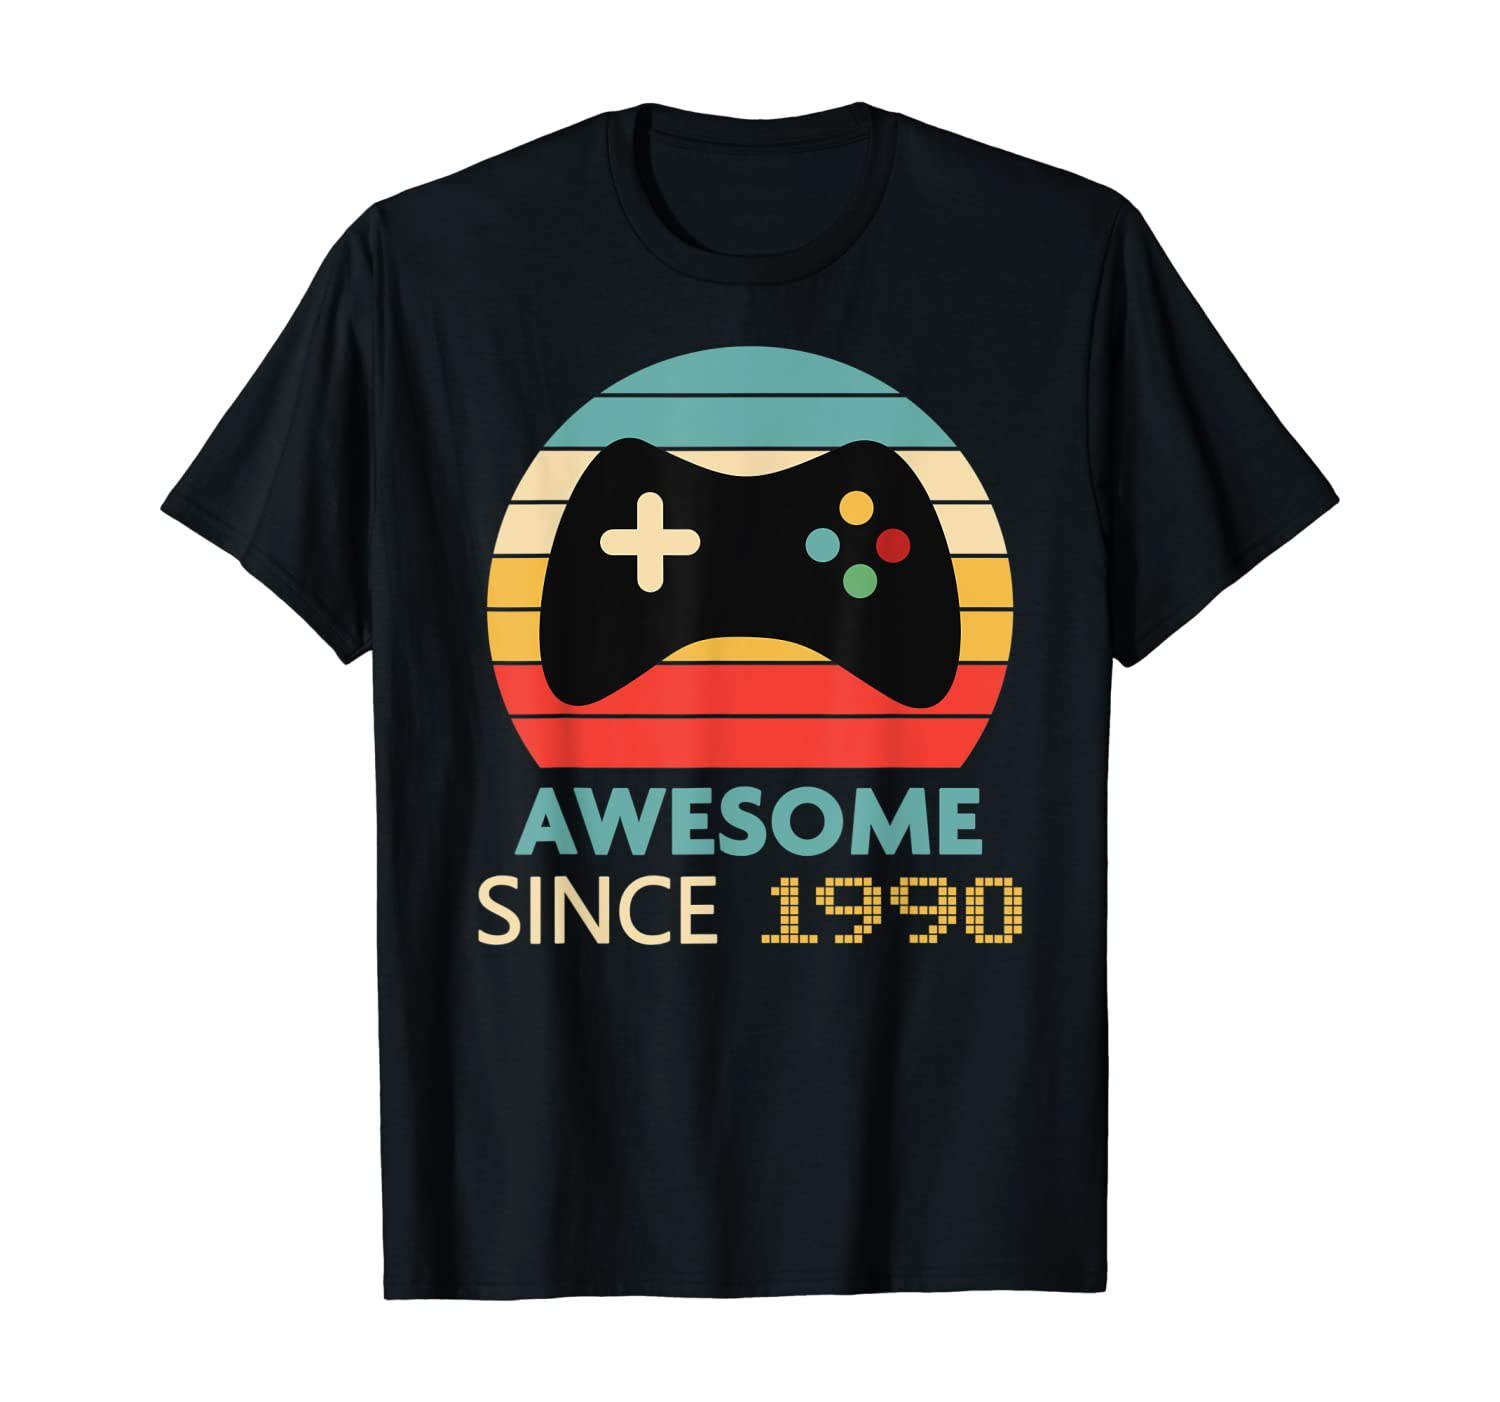 30th Birthday Gift - Awesome Since 1990 Video Game Gamer T-Shirt